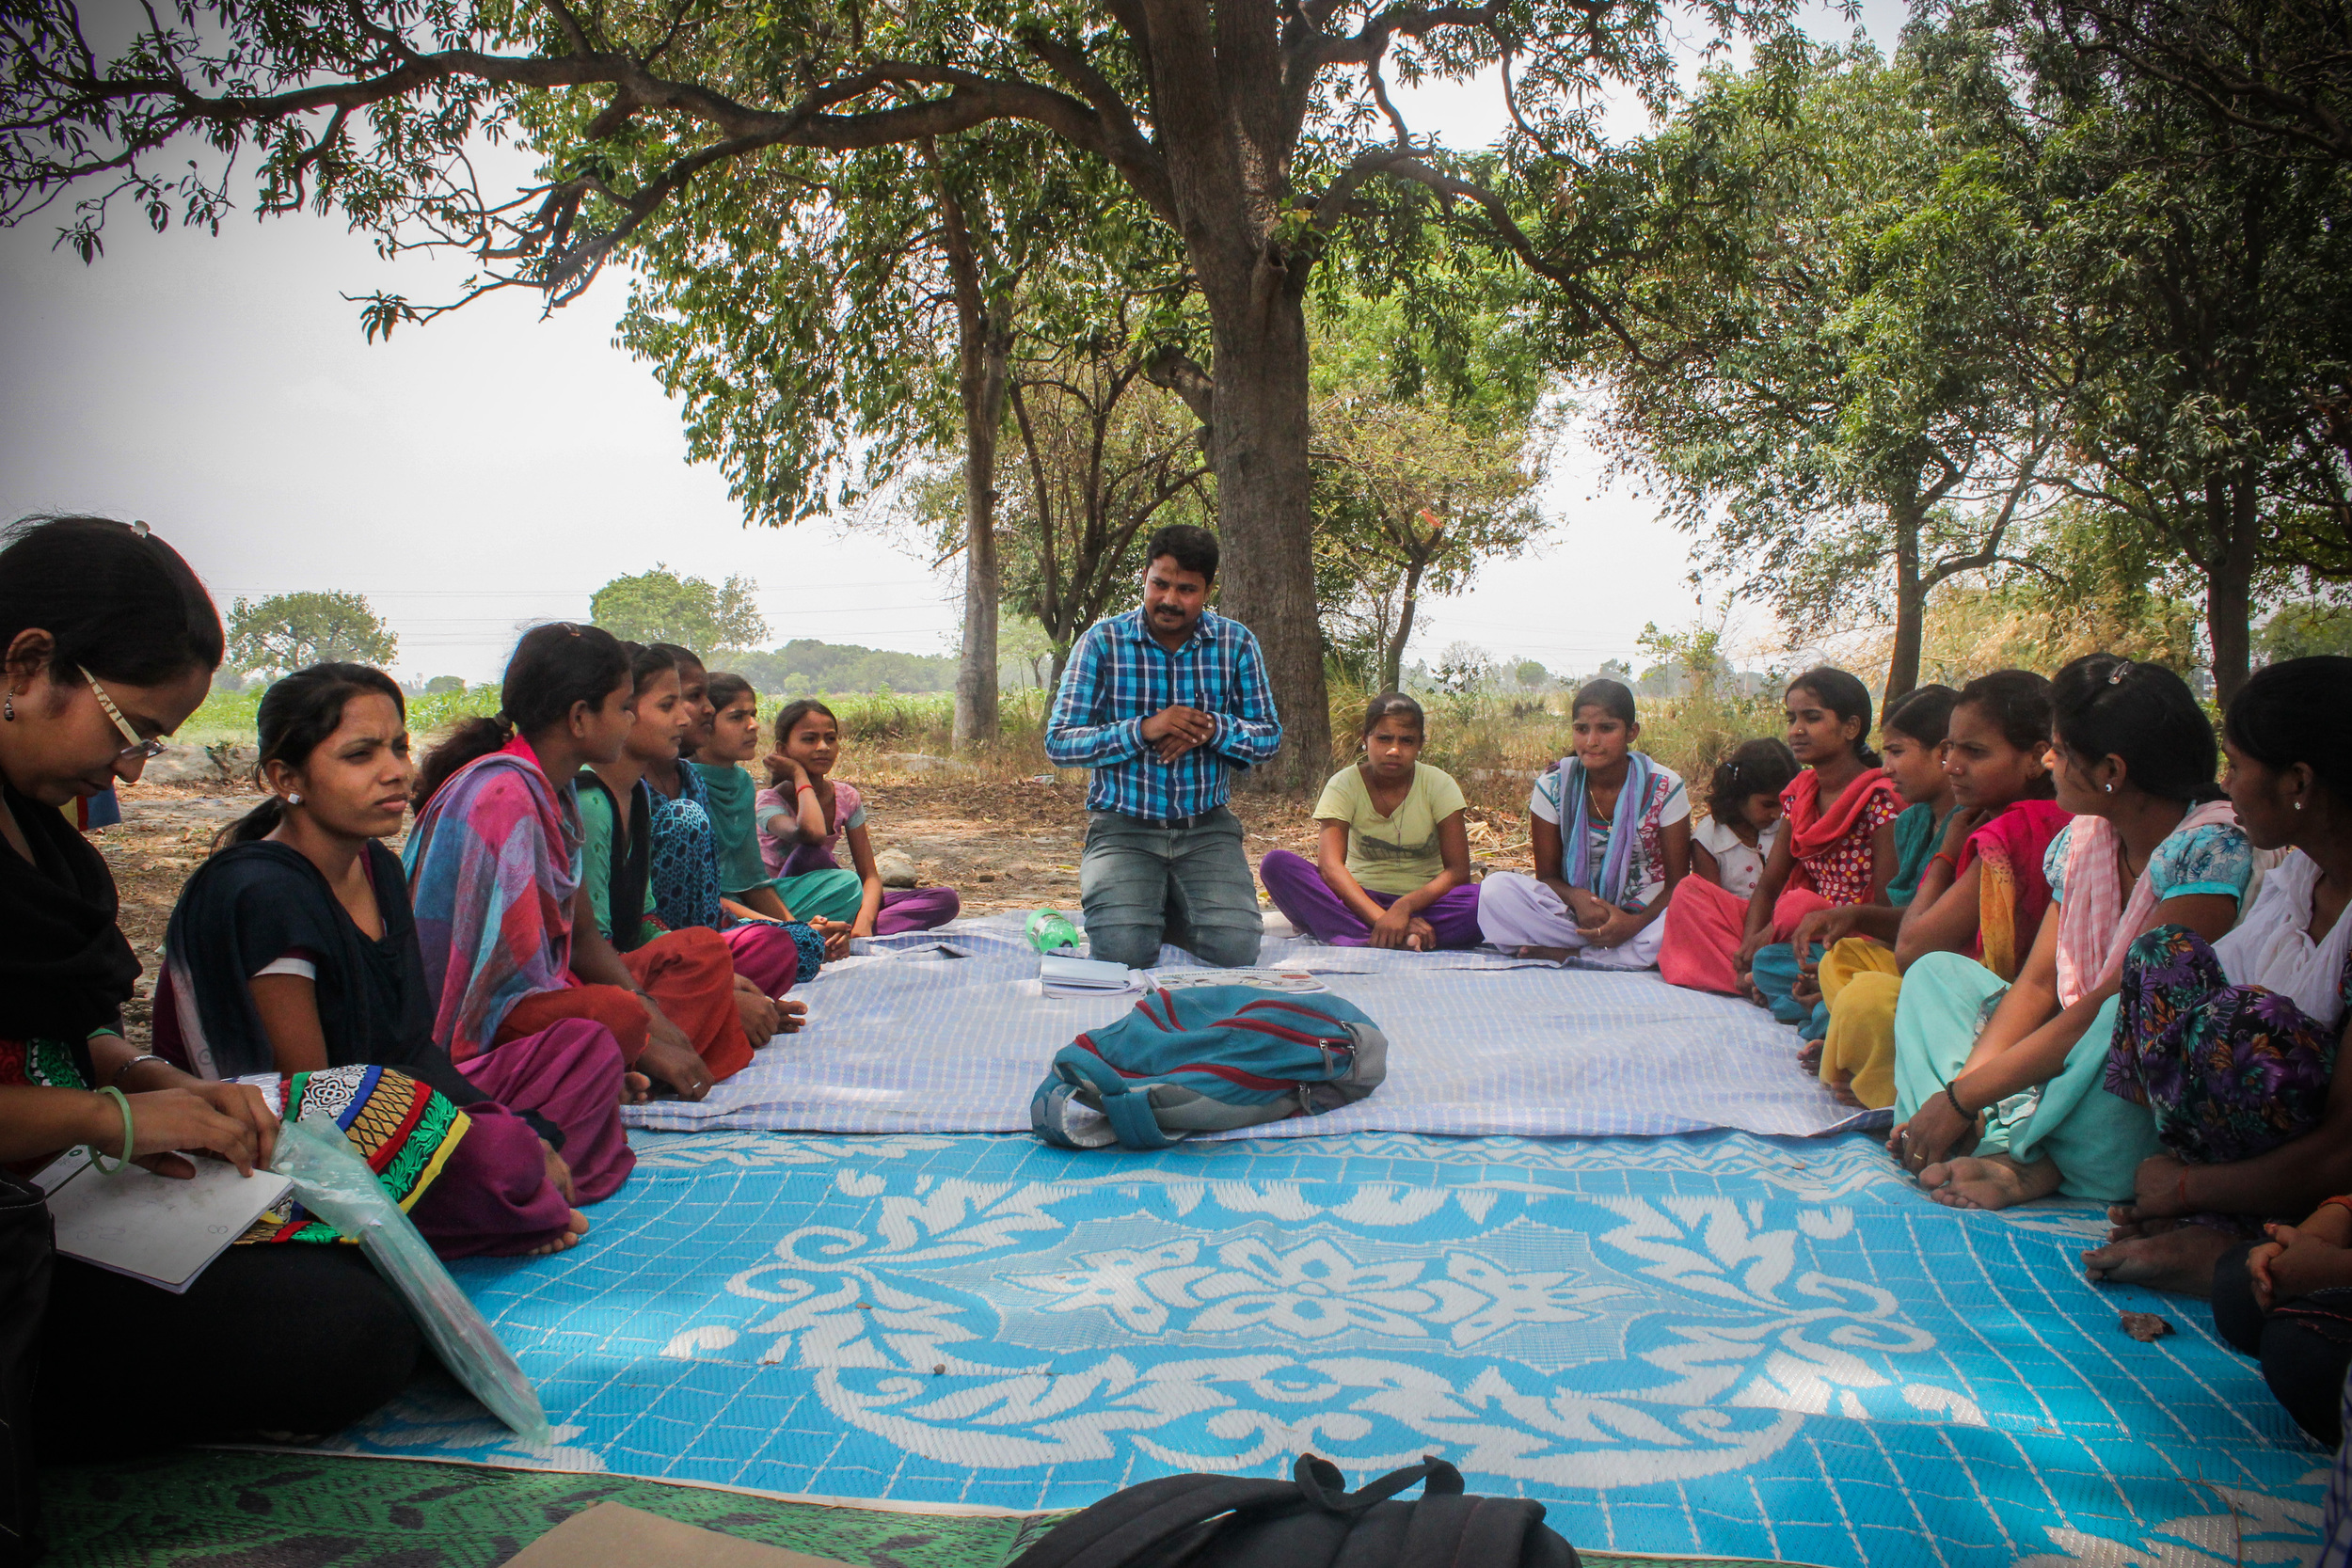 This group of women is more open to possibilities for improving their livelihood than before, thanks to meetings like this. Still, their opportunities are limited by cultural expectations and hard, social norms.